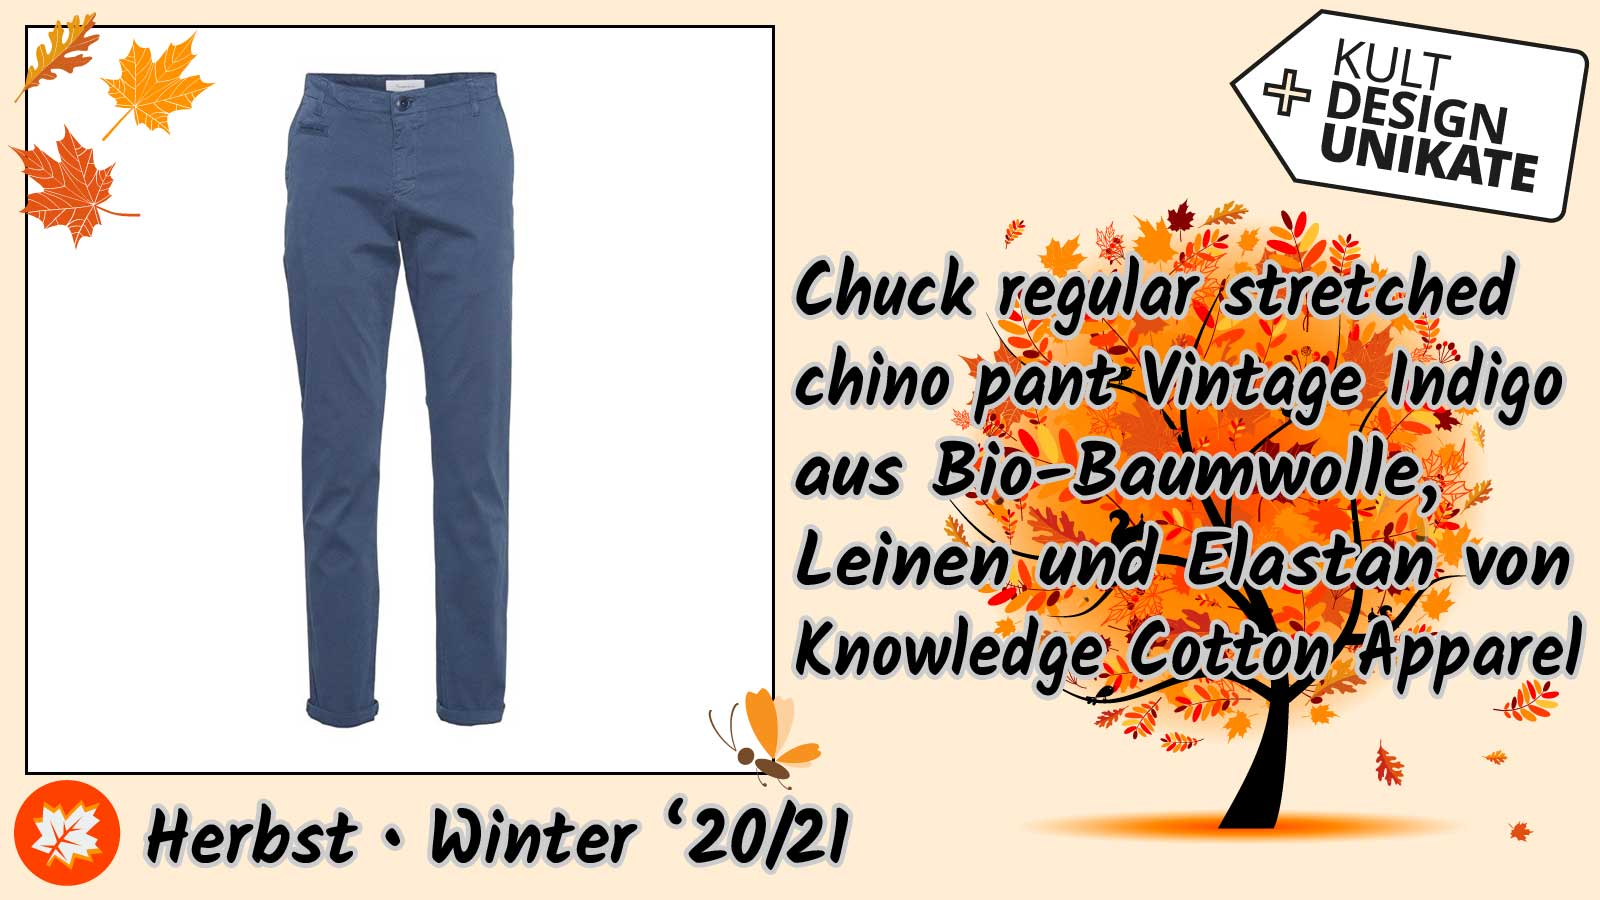 KCA-Chuck-regular-stretched-chino-pant-Vintage-Indigo